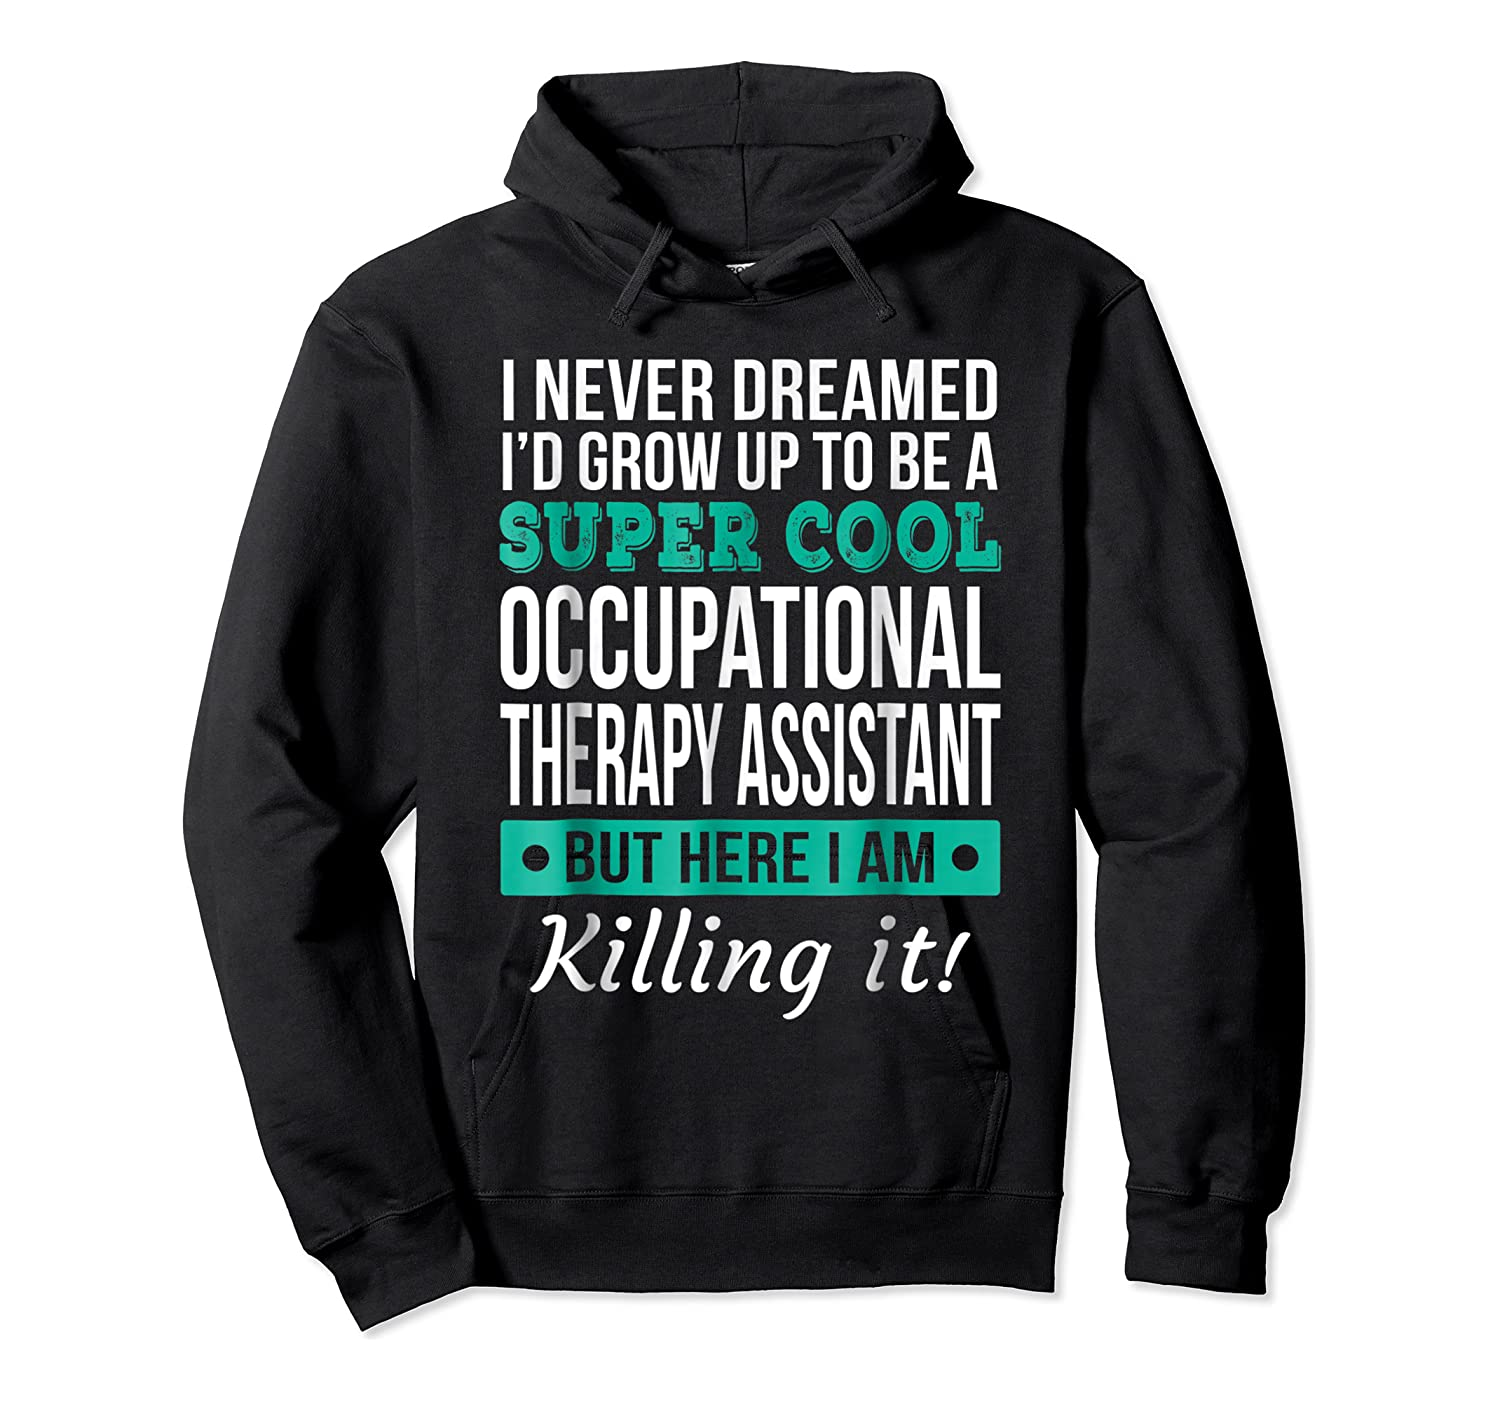 Super Cool Occupational Therapy Assistant T-shirt Funny Gift Unisex Pullover Hoodie